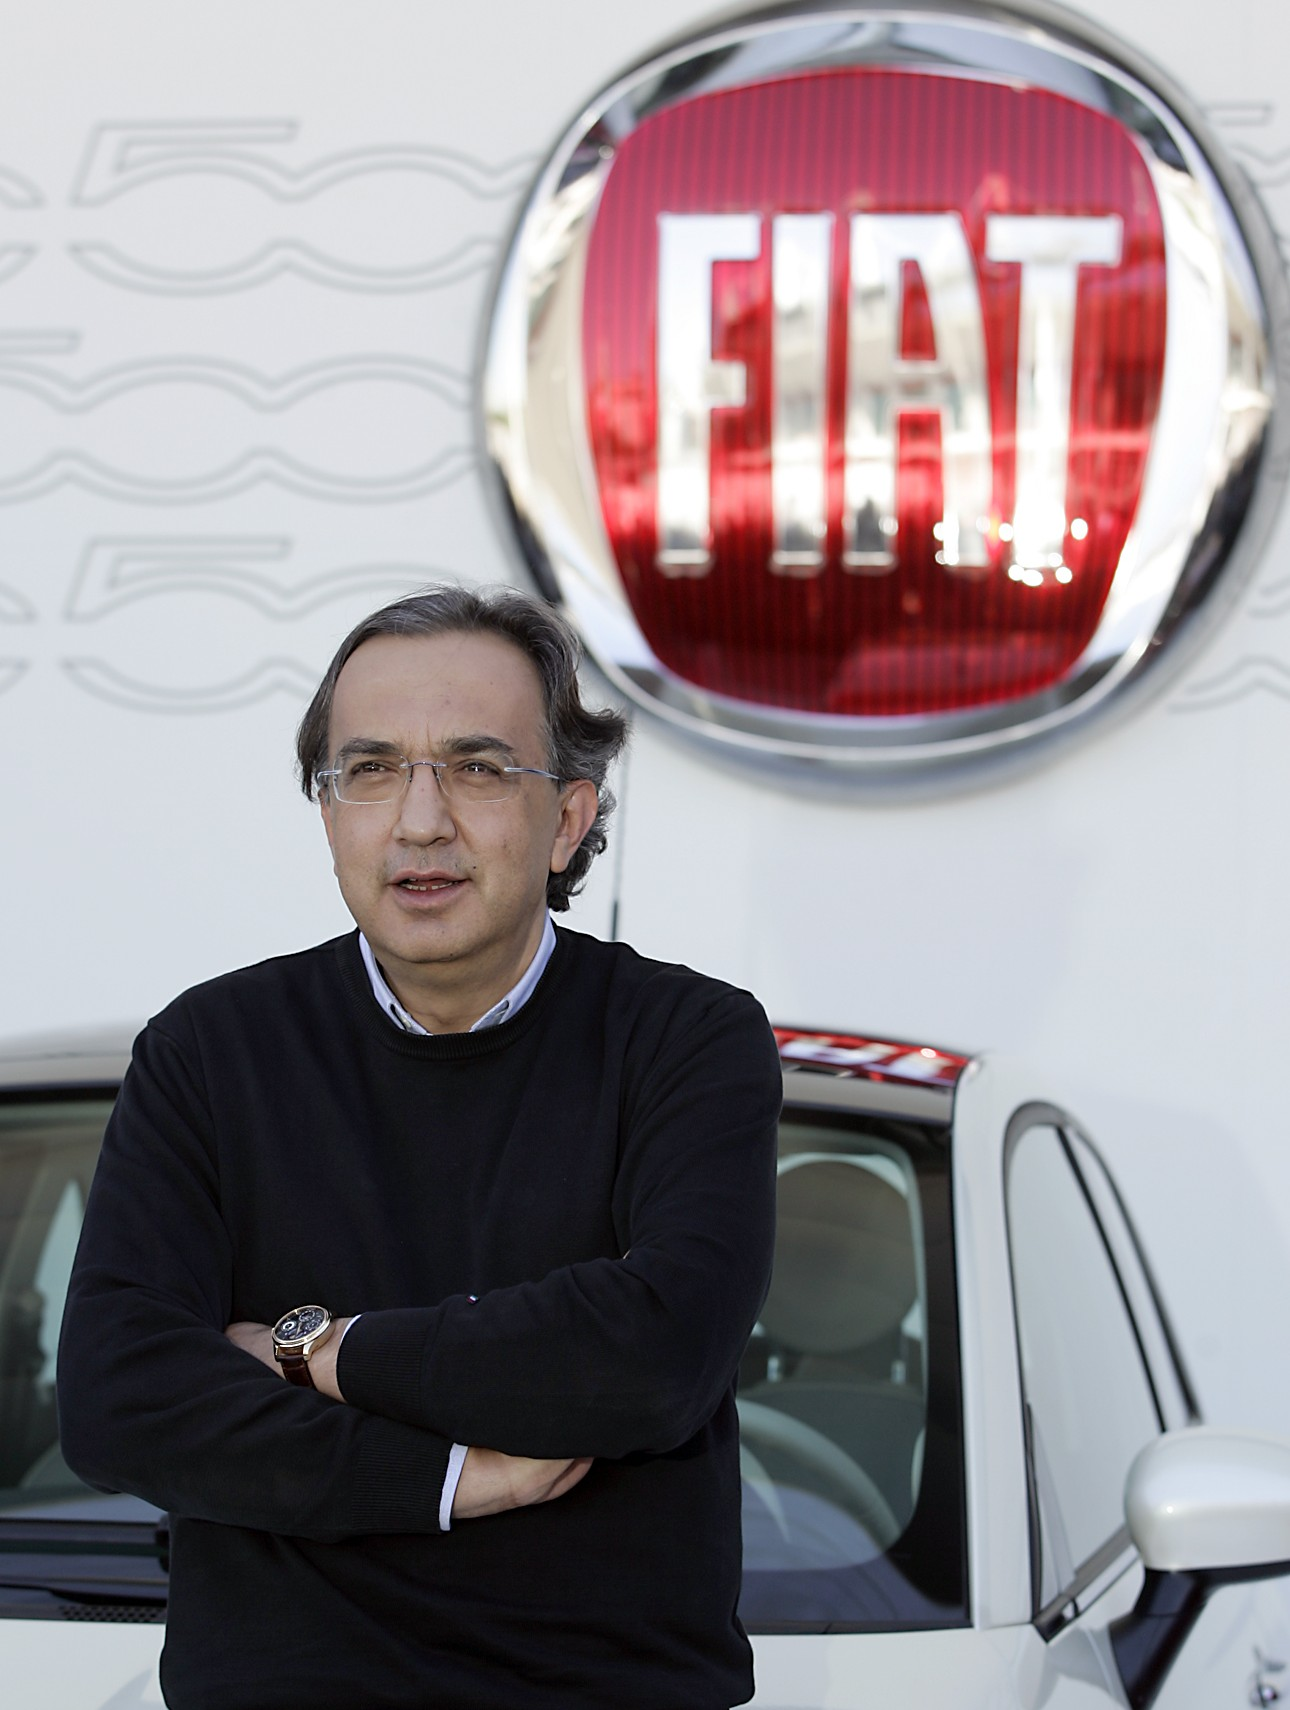 Chrysler CEO, Sergio Marchionne / Wikimedia Commons